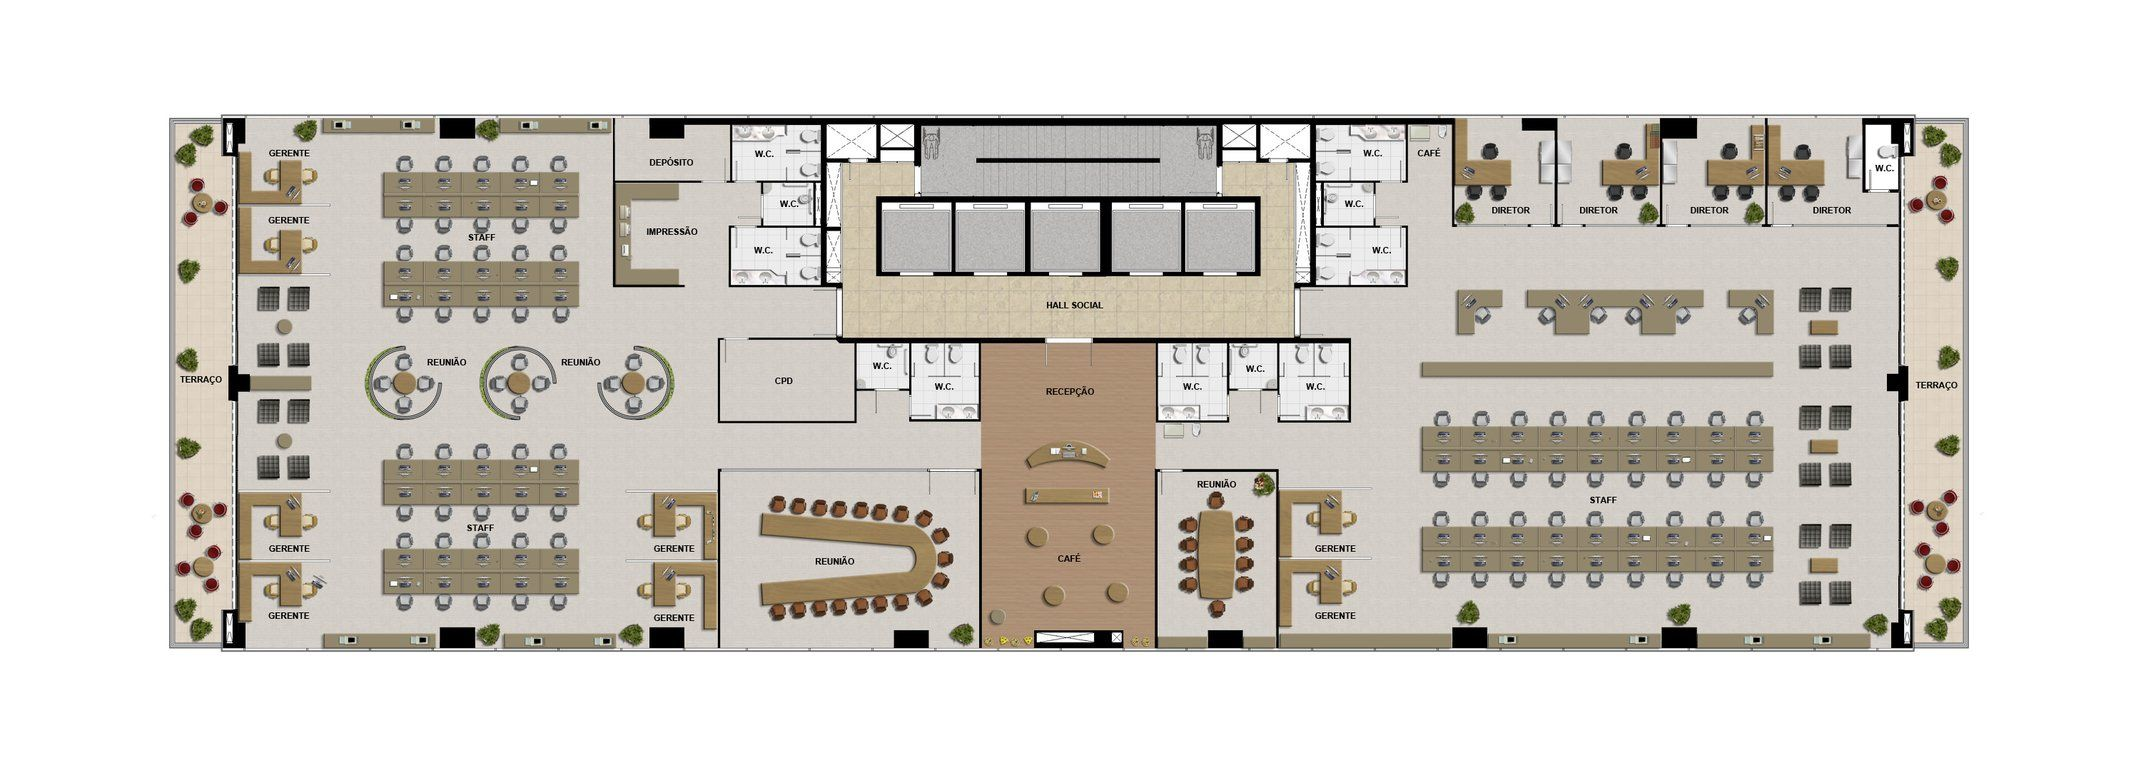 Office floor plan recherche google design int rieur 2 for Office layout plan design